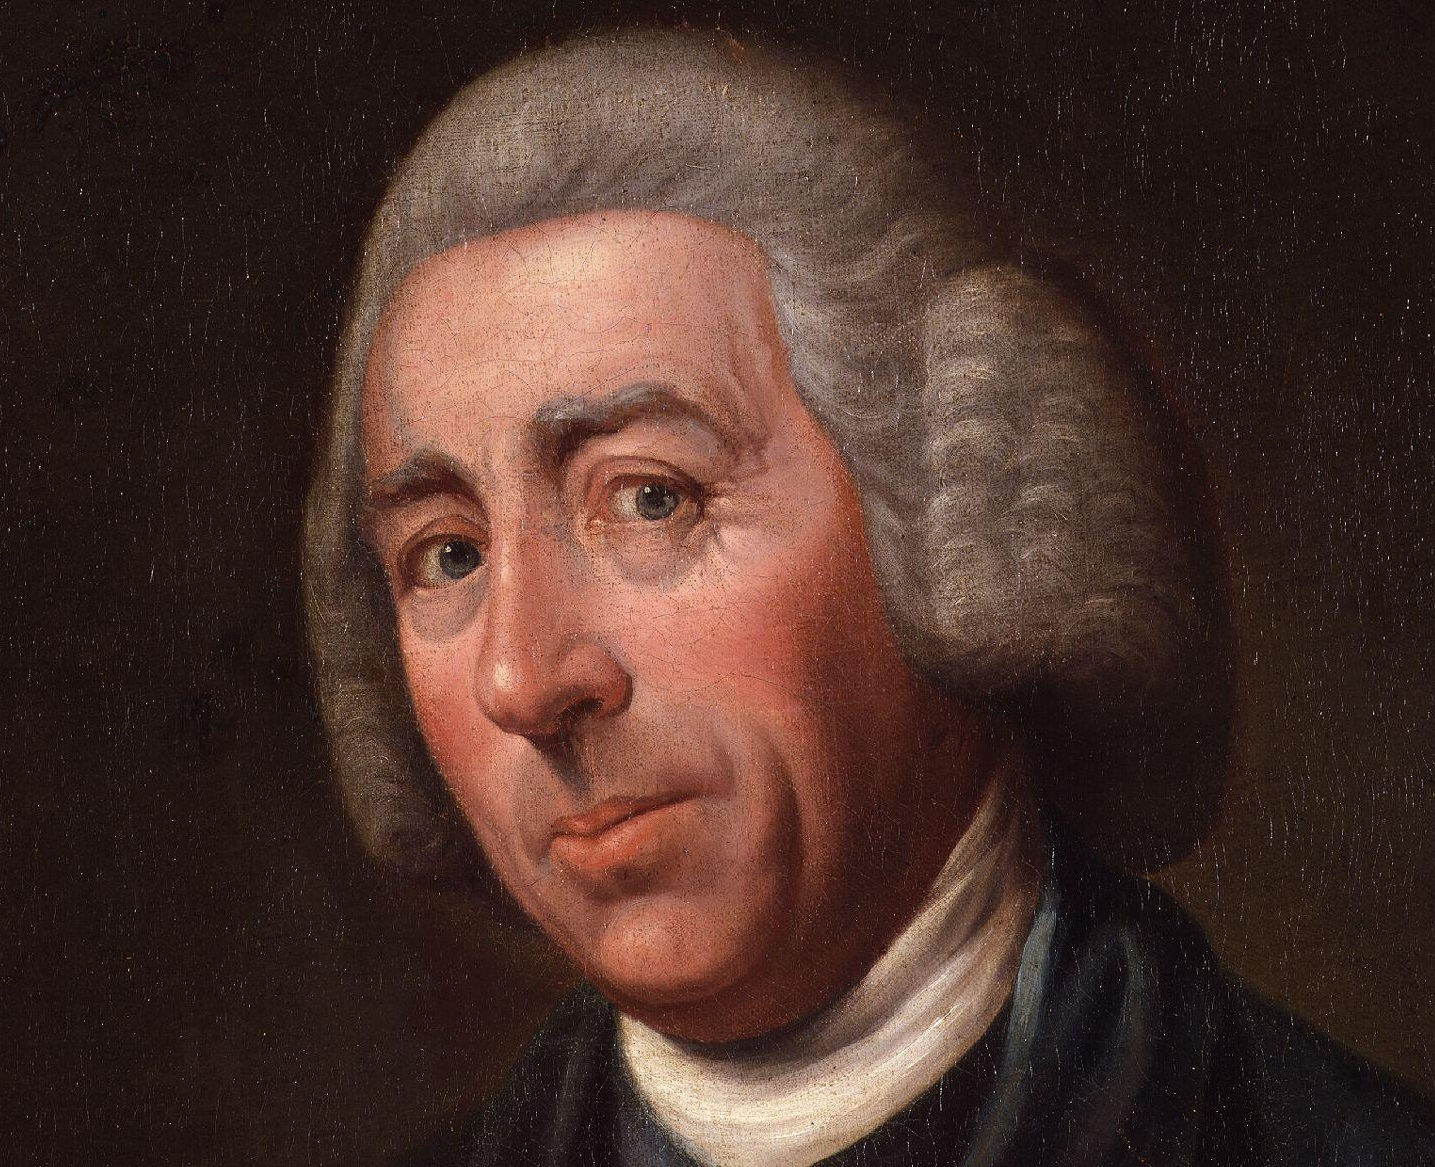 Trust in the Capability Brown celebrations